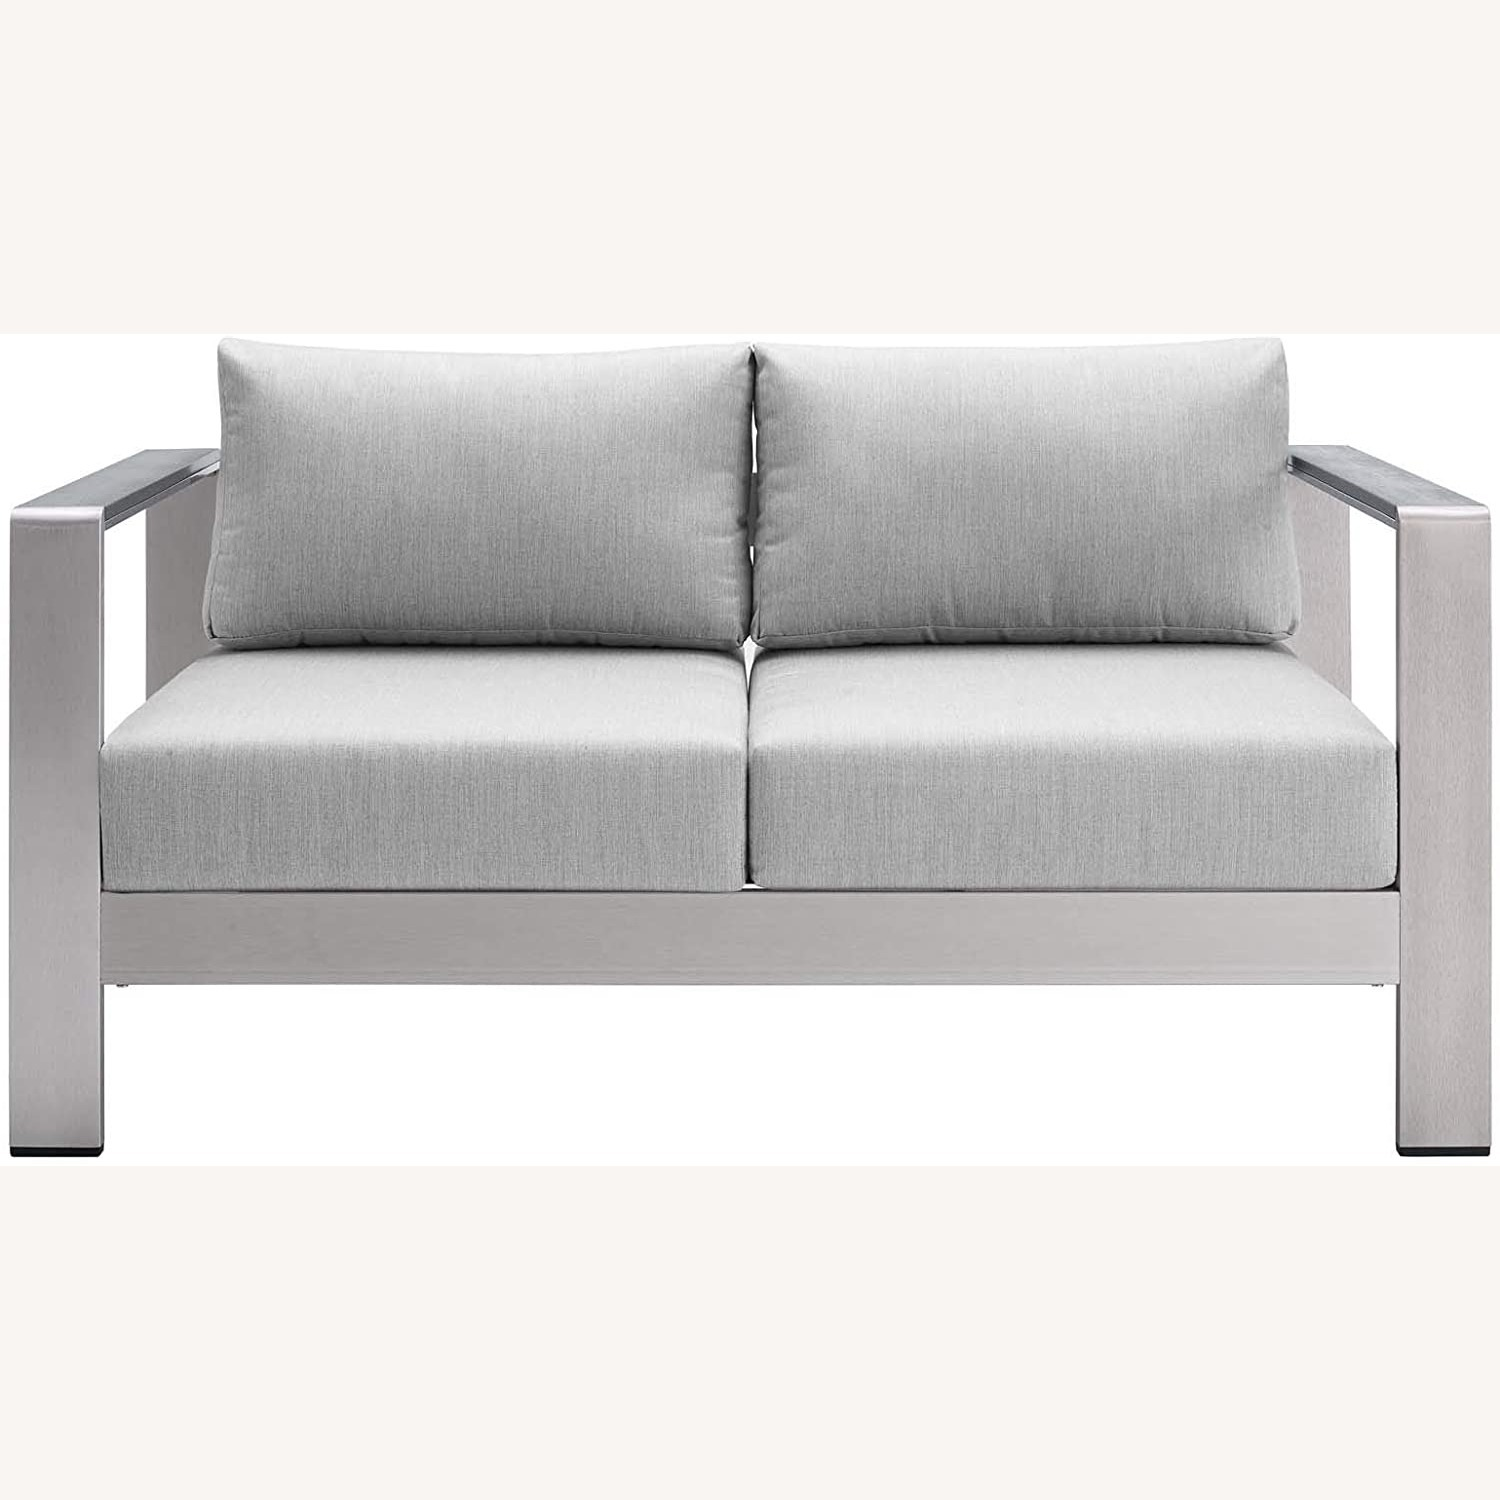 Outdoor Loveseat In Silver Aluminum Frame Finish - image-1